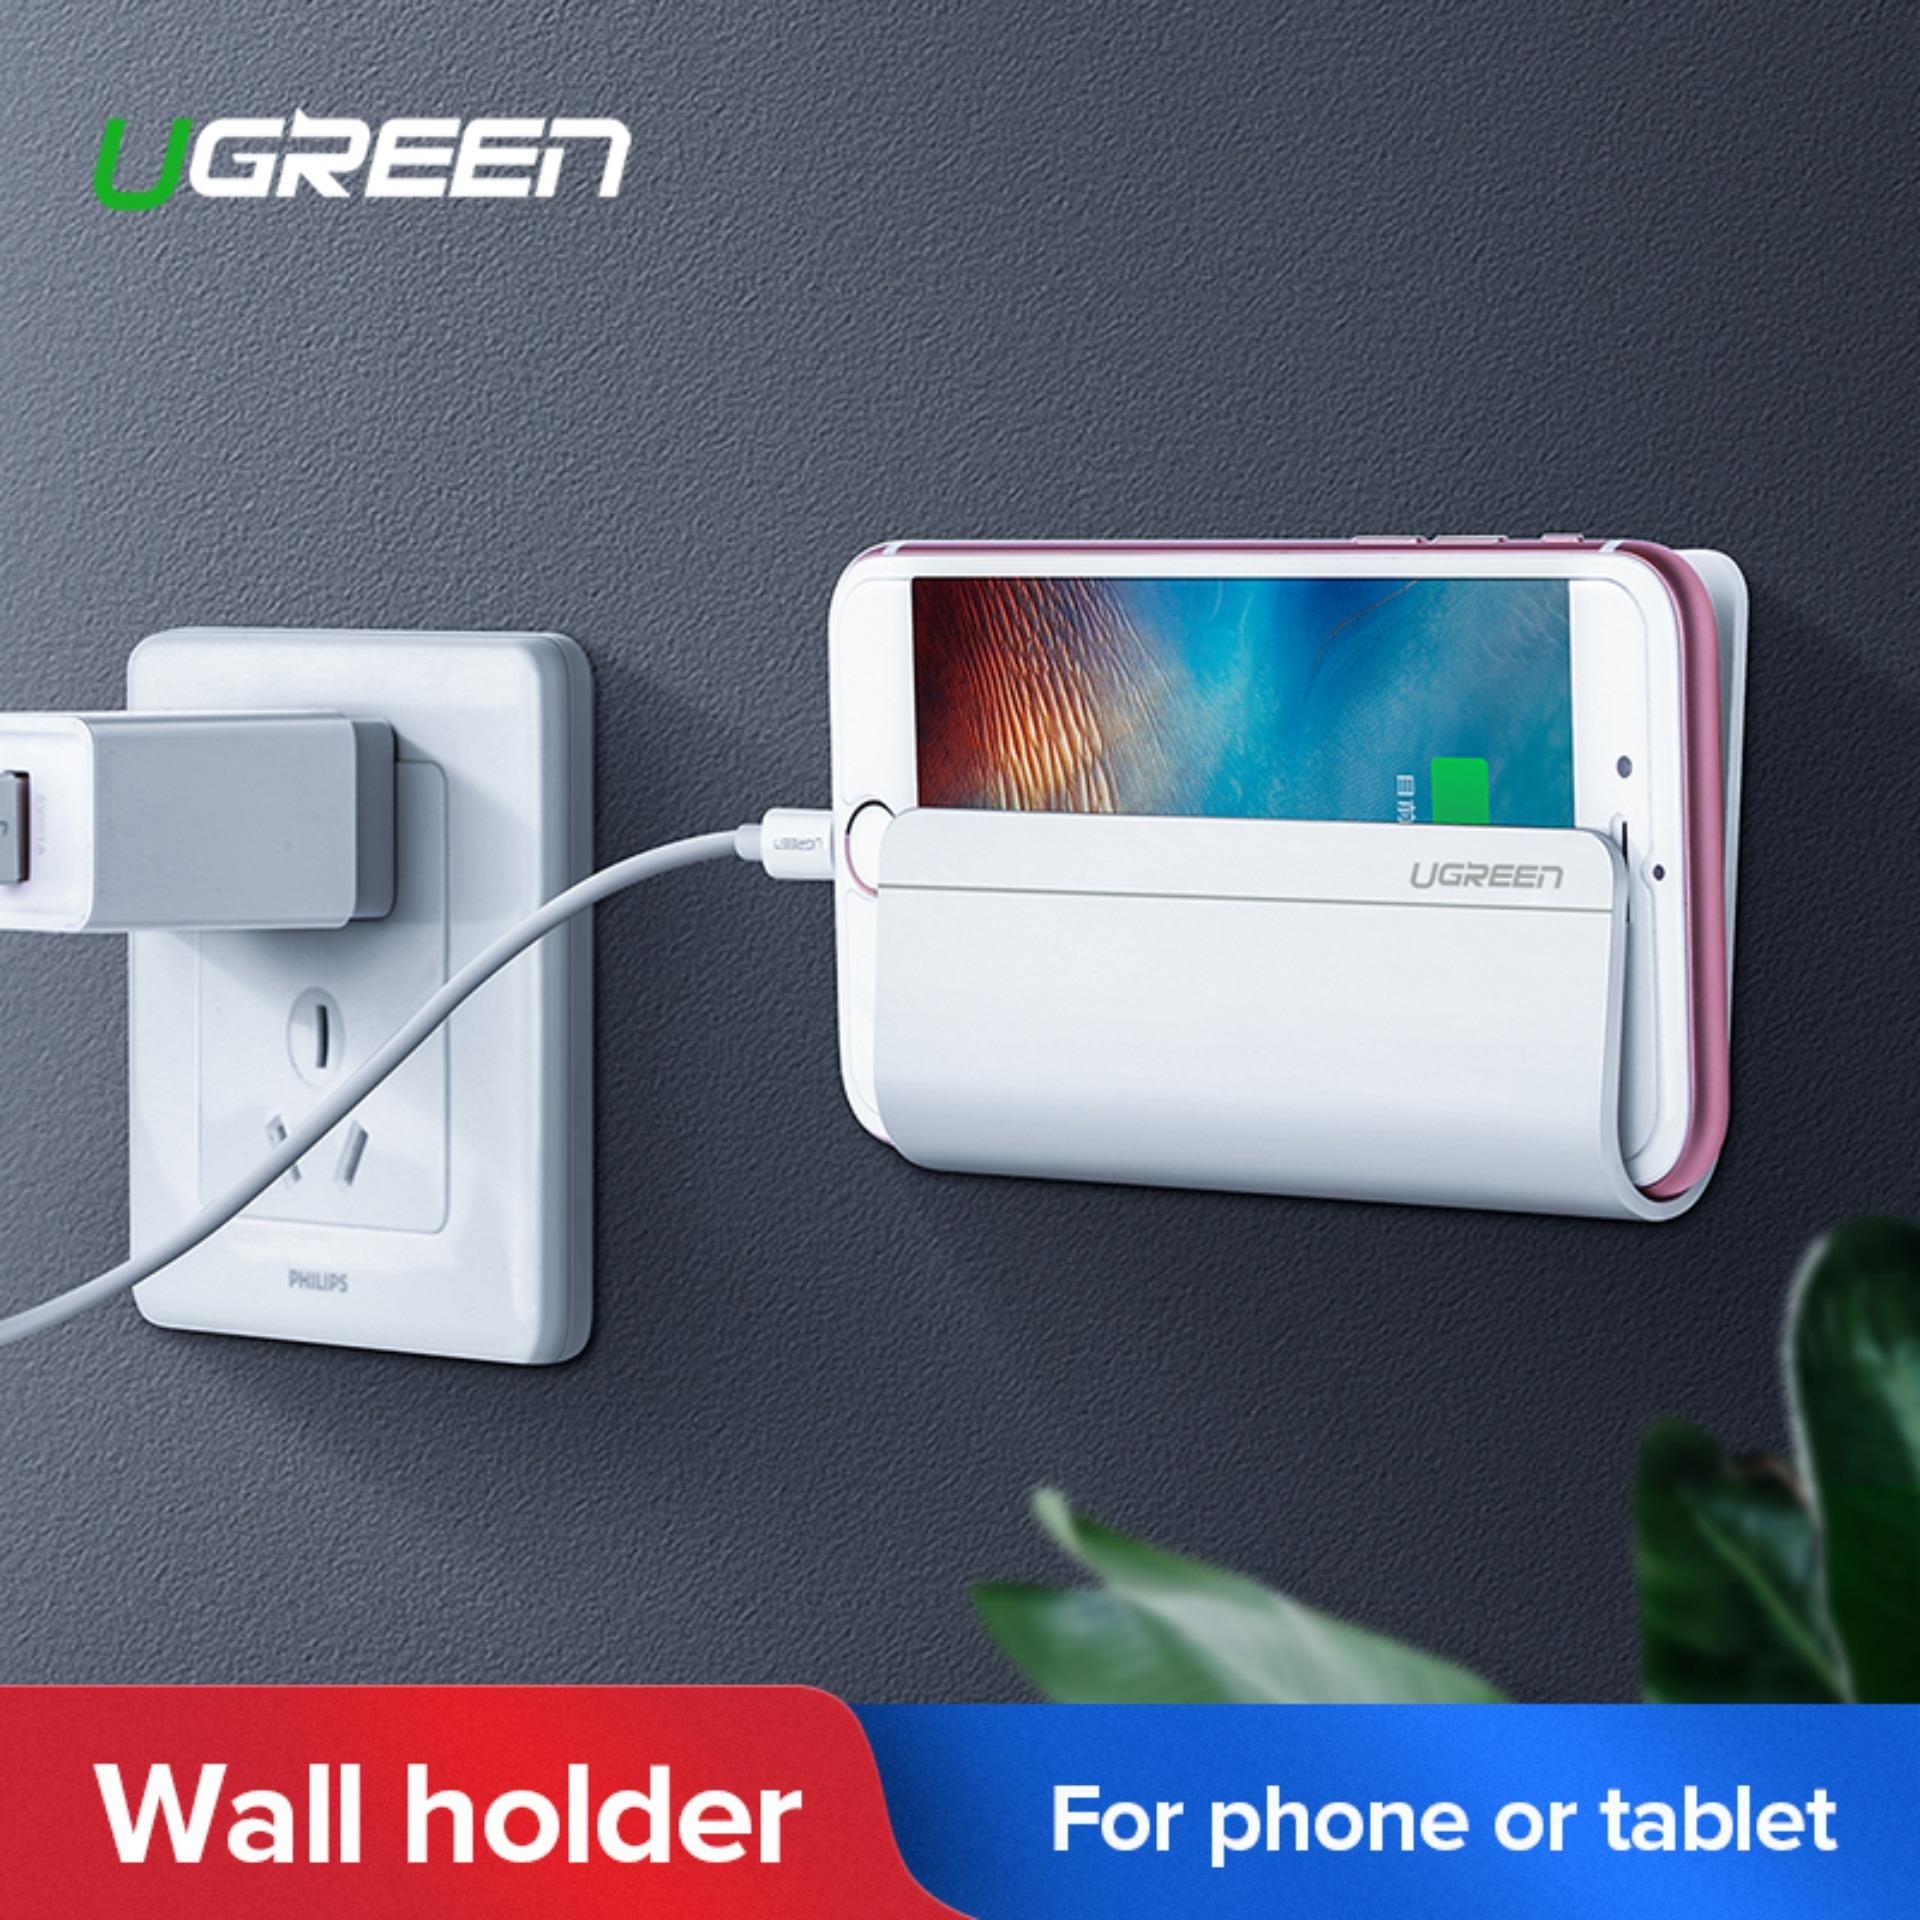 Ugreen Wall Mount Phone Holder With Adhesive Strips, Charging Holder For Iphone, Ipad And More Other Smartphone And Tablet-Intl By Ugreen Flagship Store.